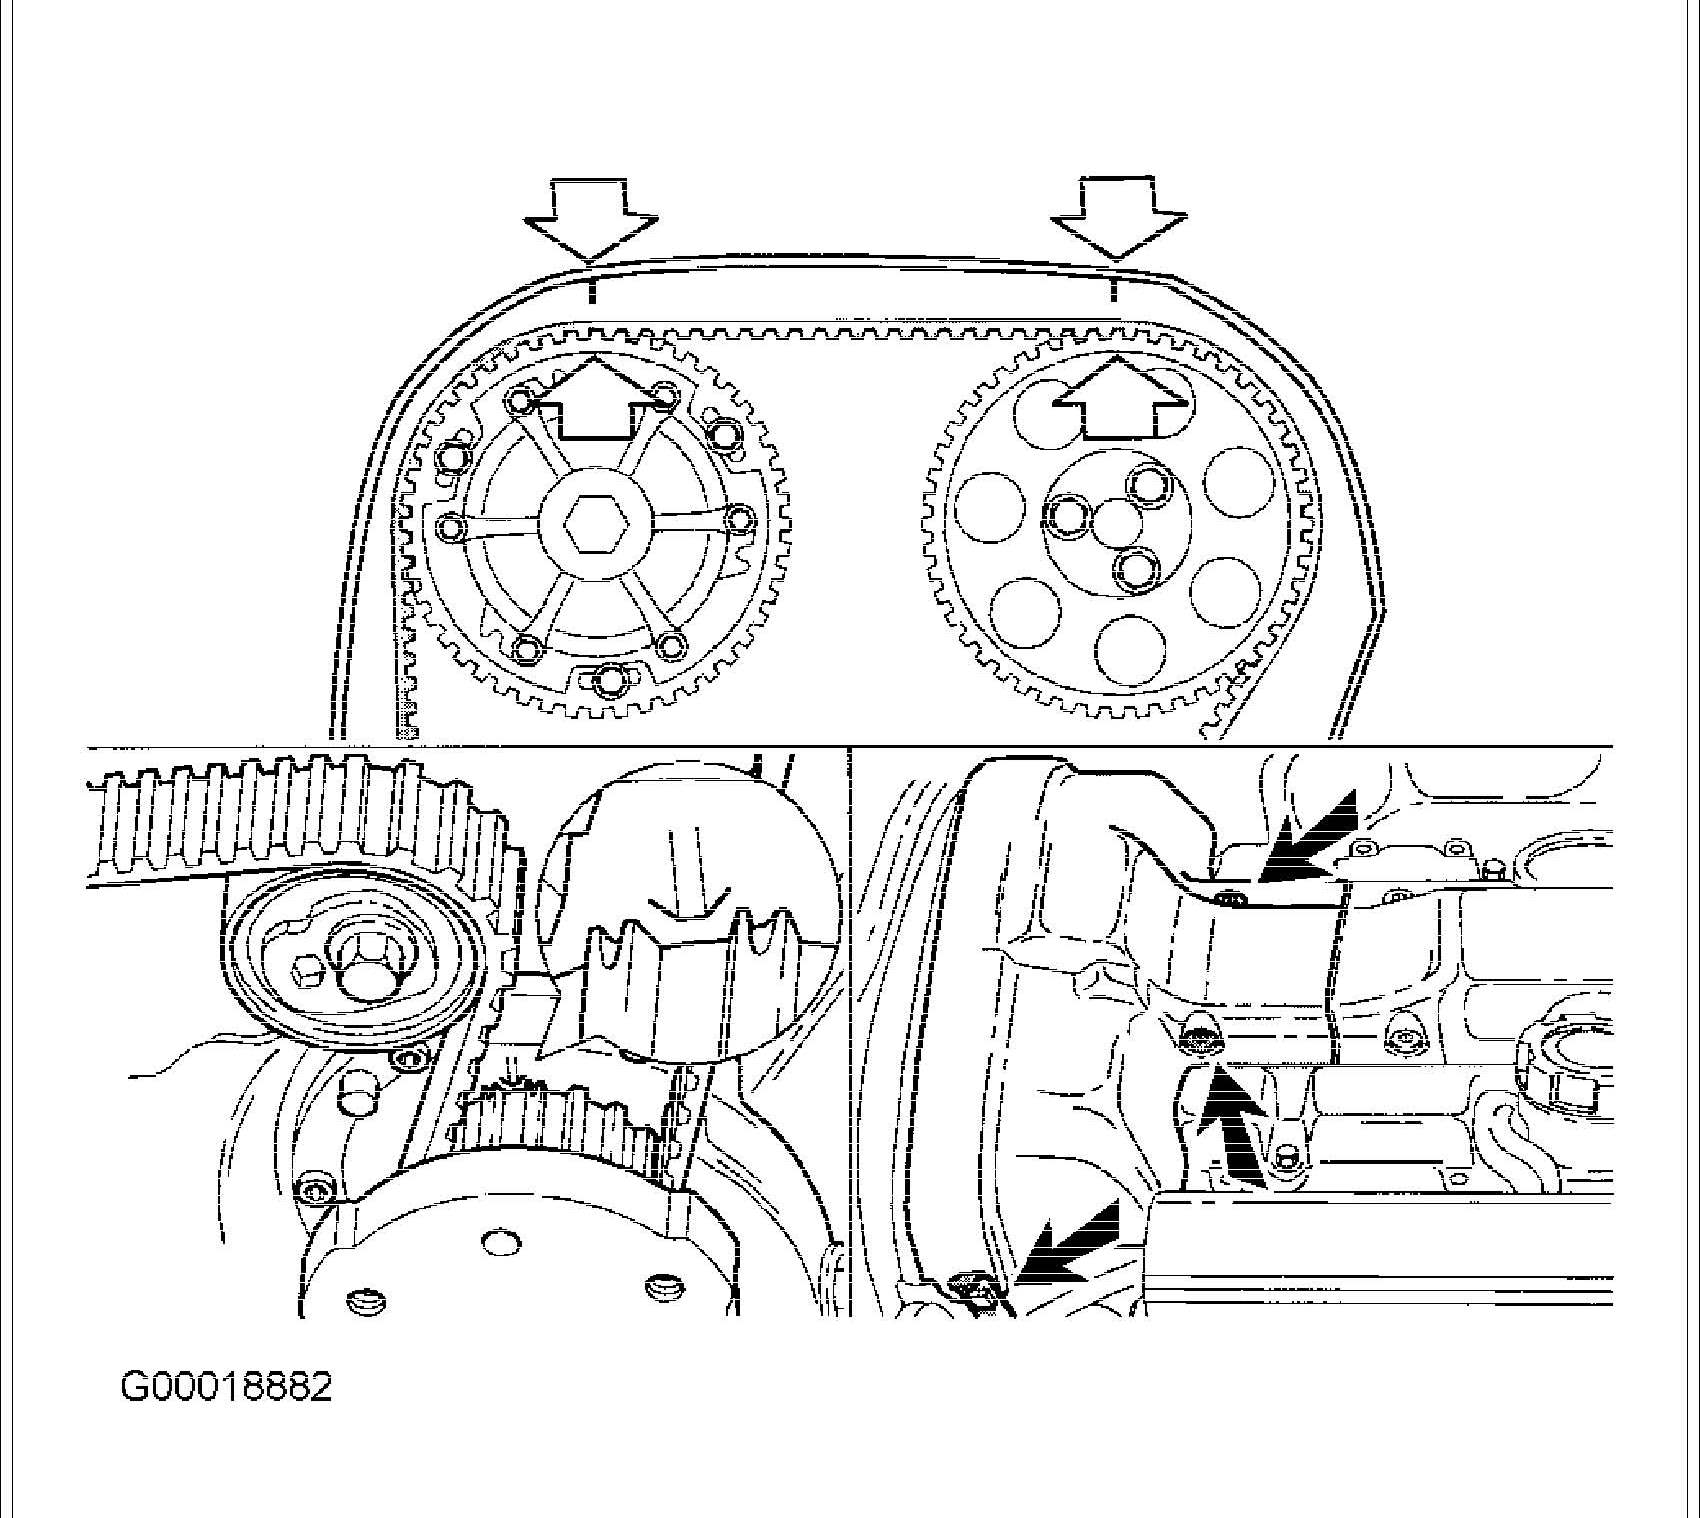 Volvo S70 Engine Diagram Of 99 Wiring Diagrams 98 Fuse Box Auto V70